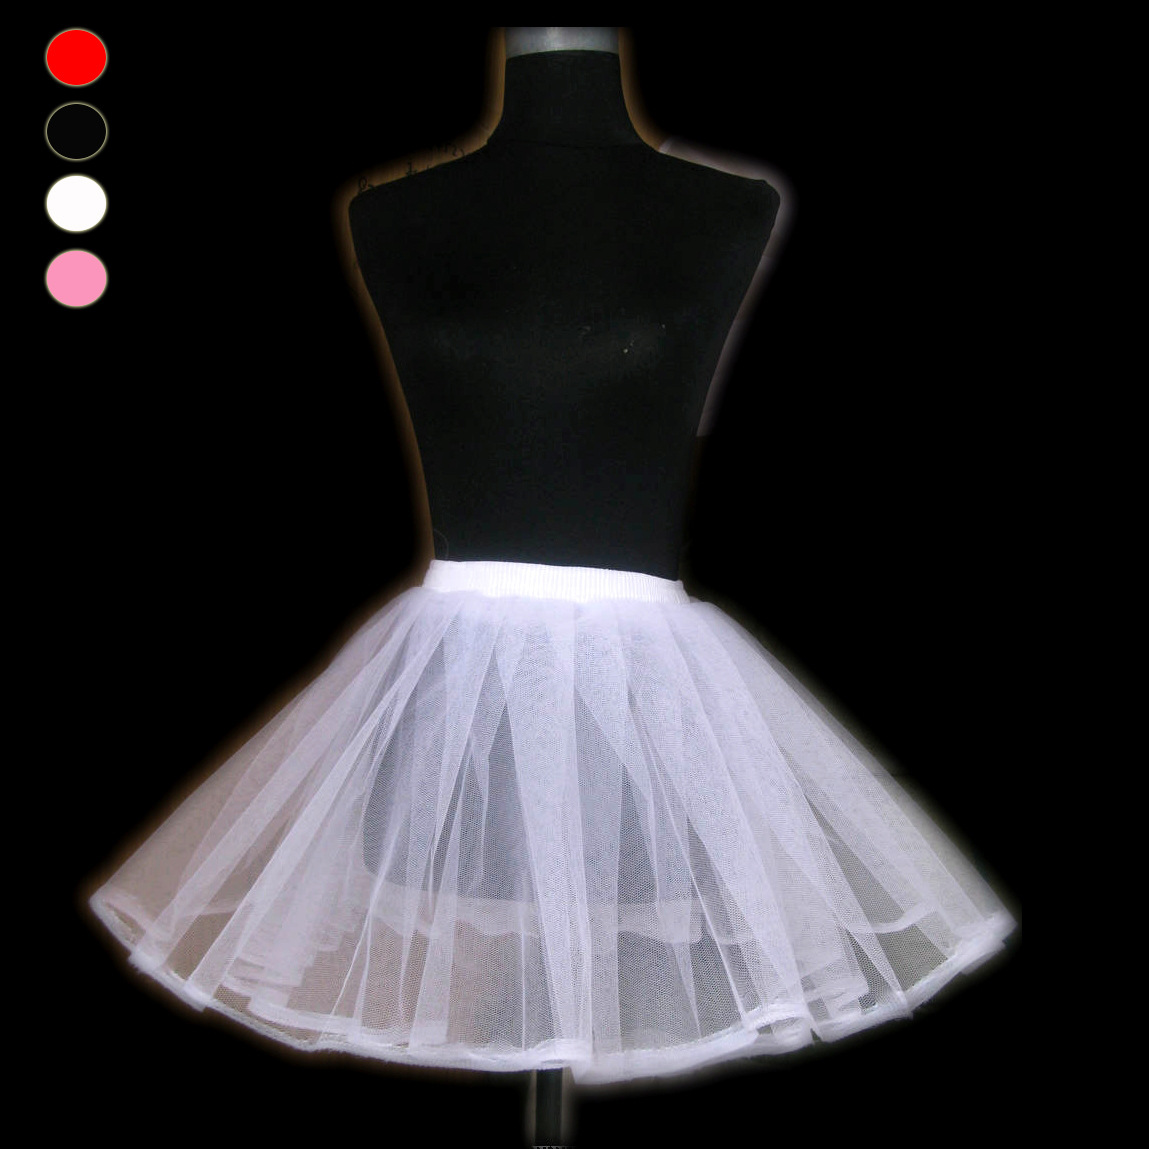 Small Ballet Crinoline Wedding Dress Sexy Boneless Double Layer Hard Gauze Tutu Skirt W212 Black And White Pink